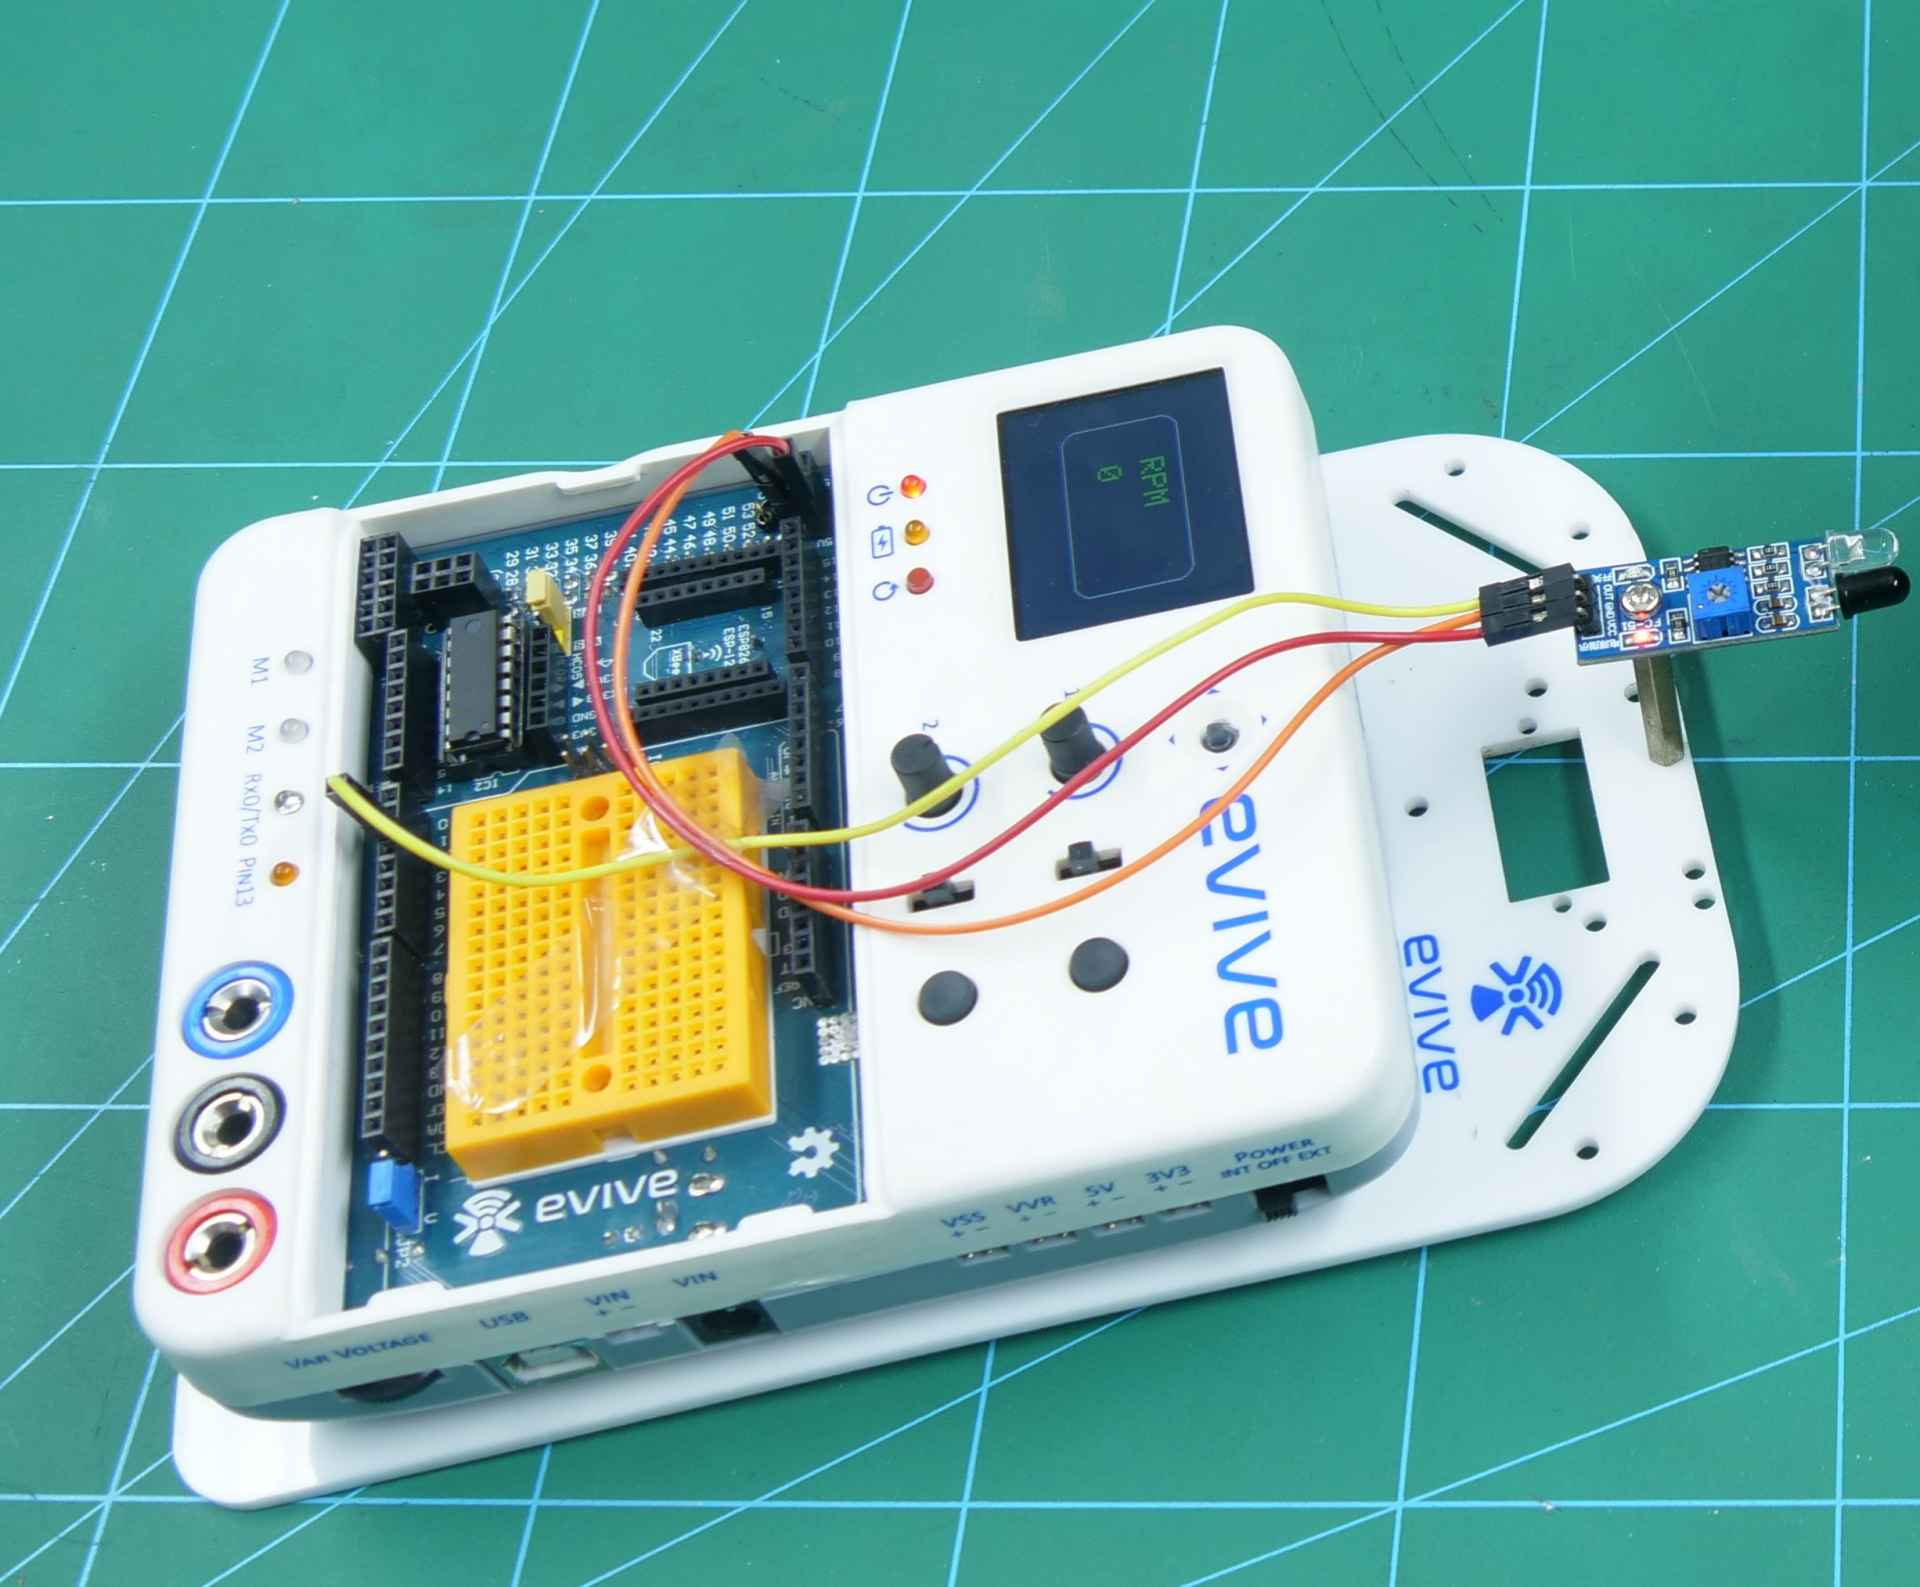 How to make Digital Tachometer Based on Arduino - DIY Project